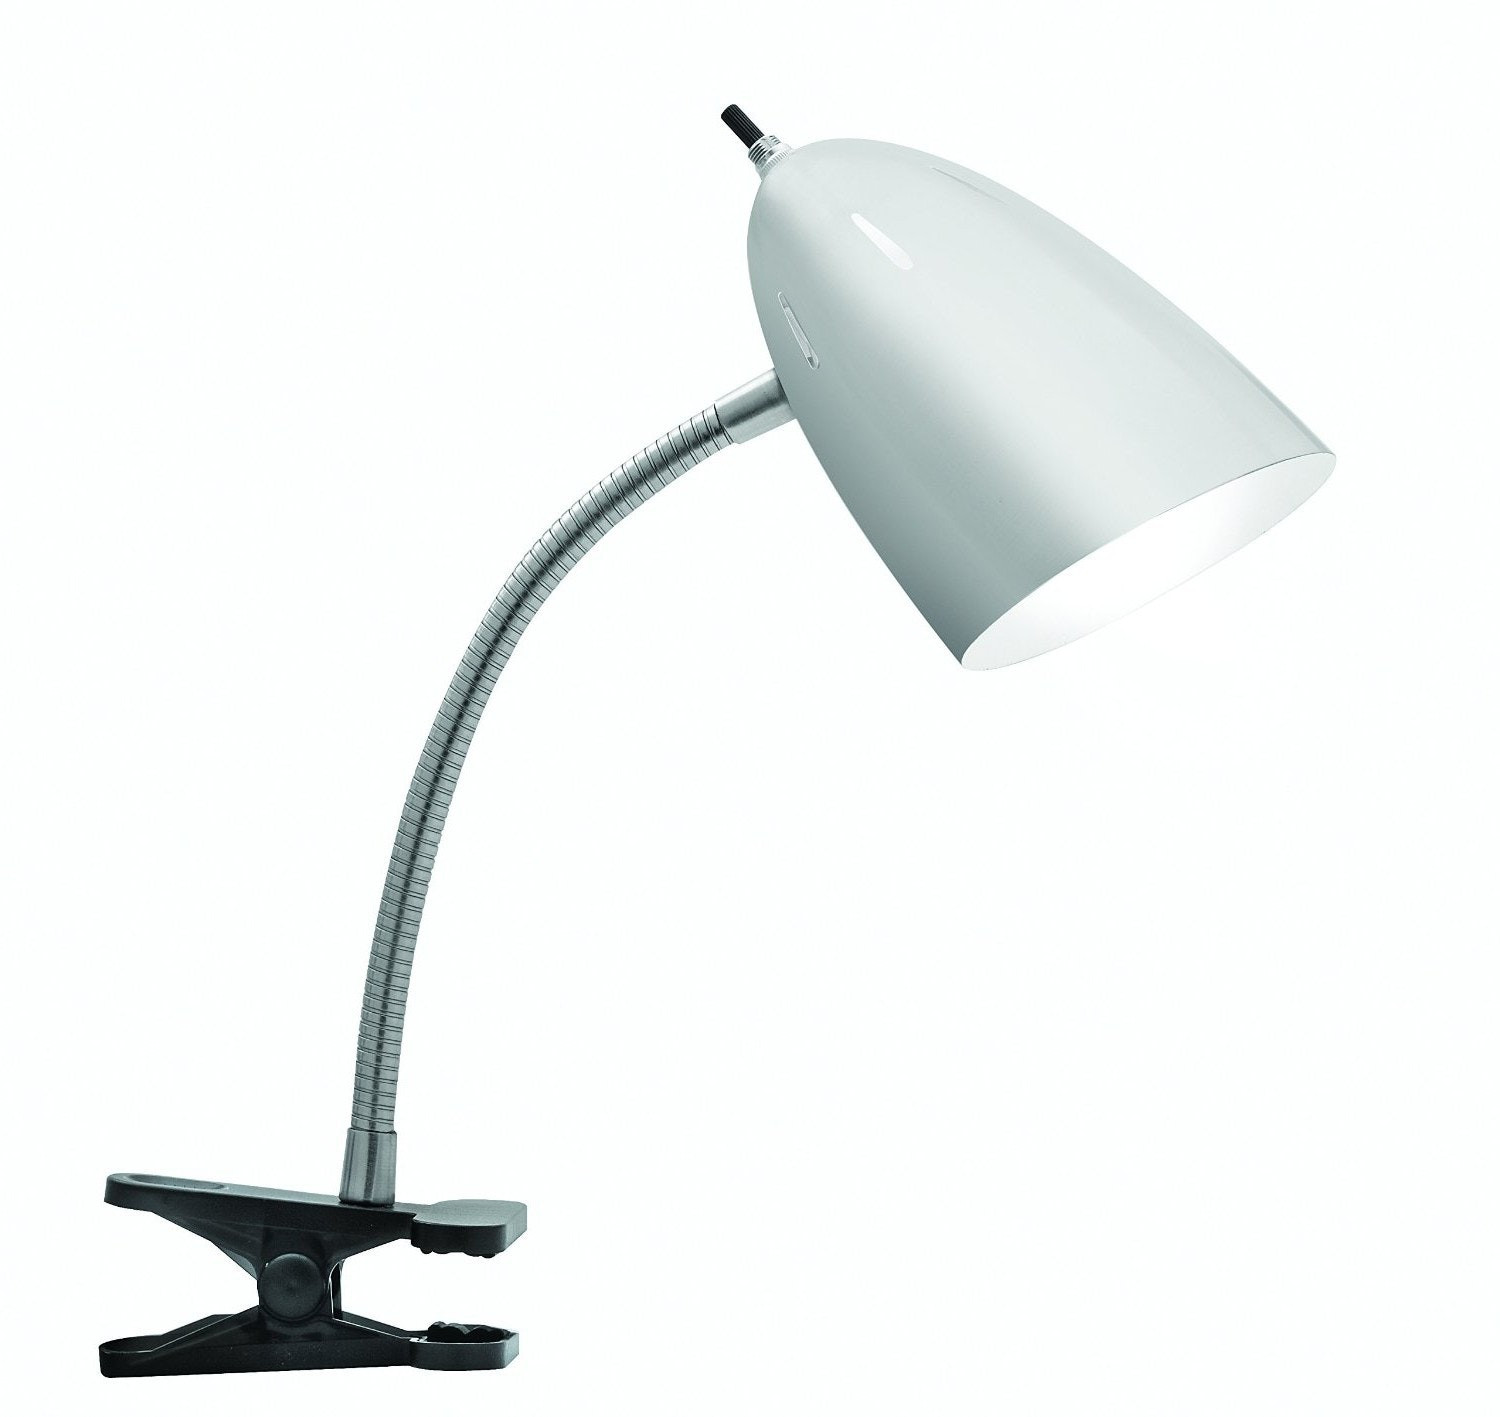 Best ideas about Office Depot Desk Lamps . Save or Pin Lamp Architect Desk Lamp fice Depot Desk Lamps Now.